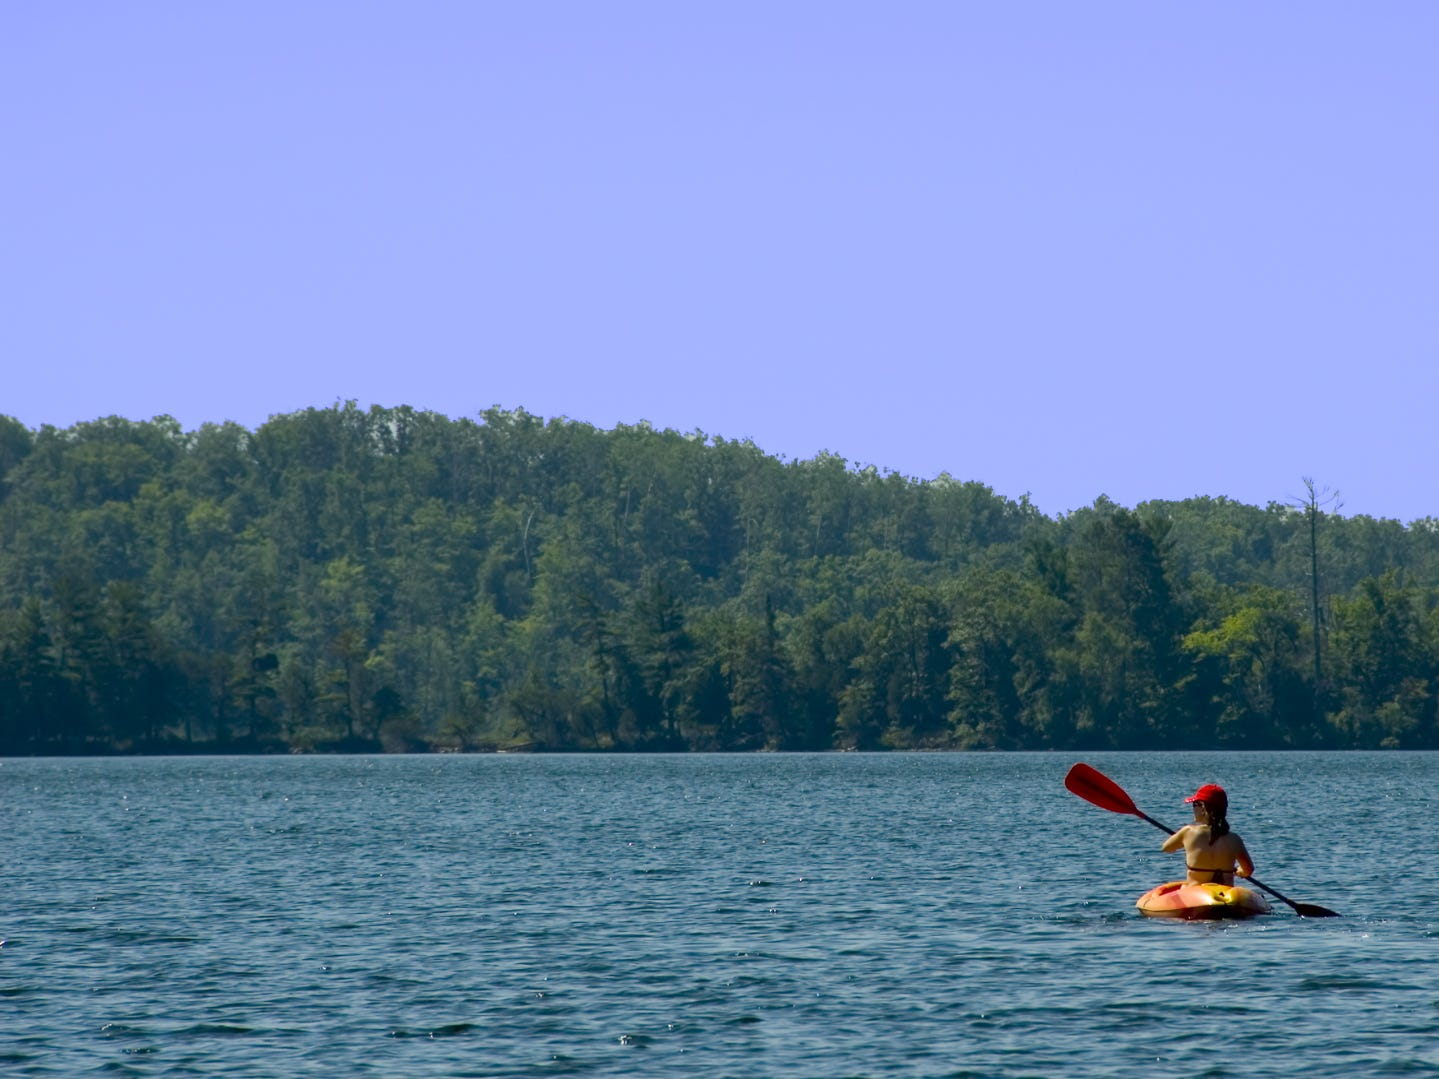 Minnesota: Whether you want to have an adventure-filled or relaxing weekend, you can do both in the Brainerd Lakes area. For those seeking some action, there are plenty of opportunities to golf, fish, boat, bike, snowmobile, bird watch or kayak. For those looking for a more laid-back experience, take part in one of the local festivals, browse the shops, take a leisurely walk in one of the parks or on the nature trails, or plan a spa day. For some kitschy fun, be sure to visit Paul Bunyan Land, which features a 26-foot-tall talking lumberjack.  If you will need to fly into Minnesota for your trip, make sure you know when to book a domestic flight. It's one of the best ways to save money for your vacation. Paul Bunyan Land: $21.95.